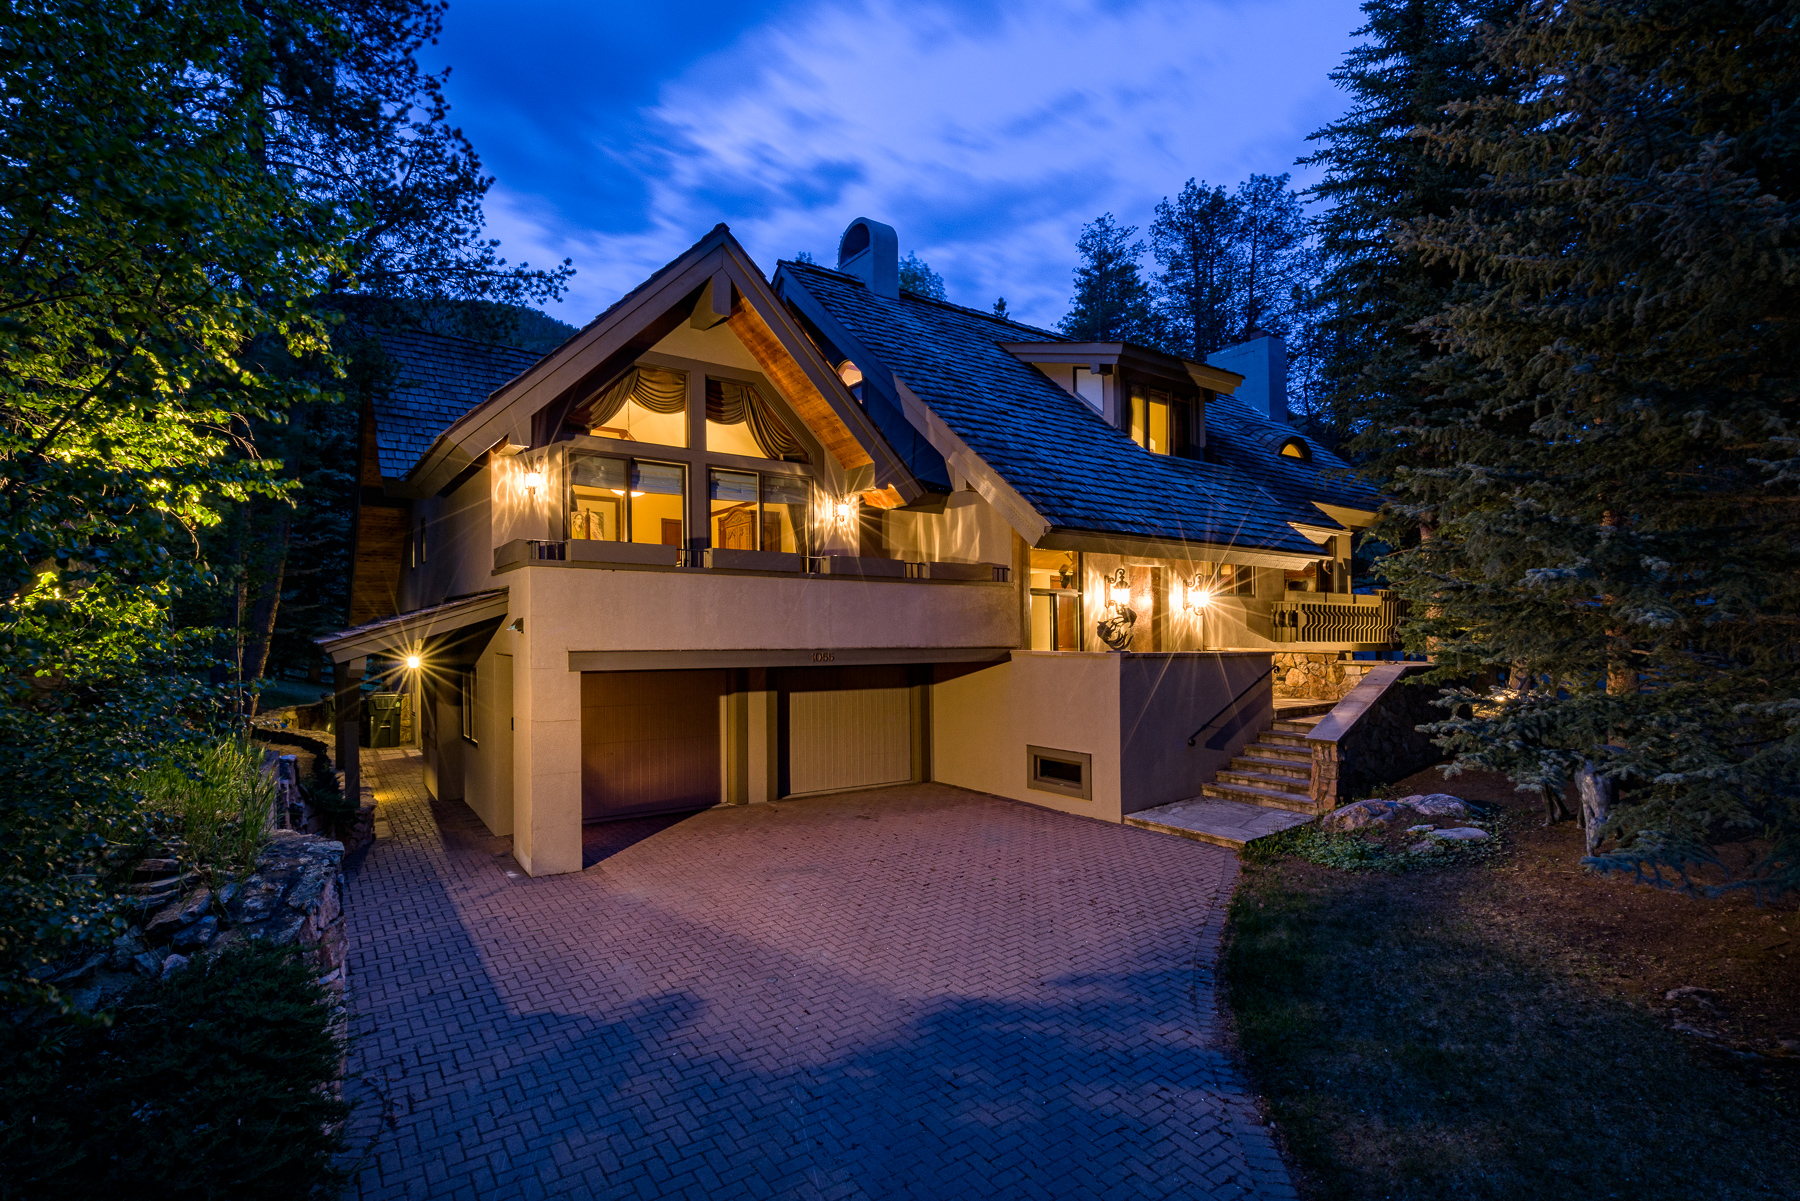 Villa per Vendita alle ore 1055 Homestake Circle Vail Golf Course, Vail, Colorado, 81657 Stati Uniti